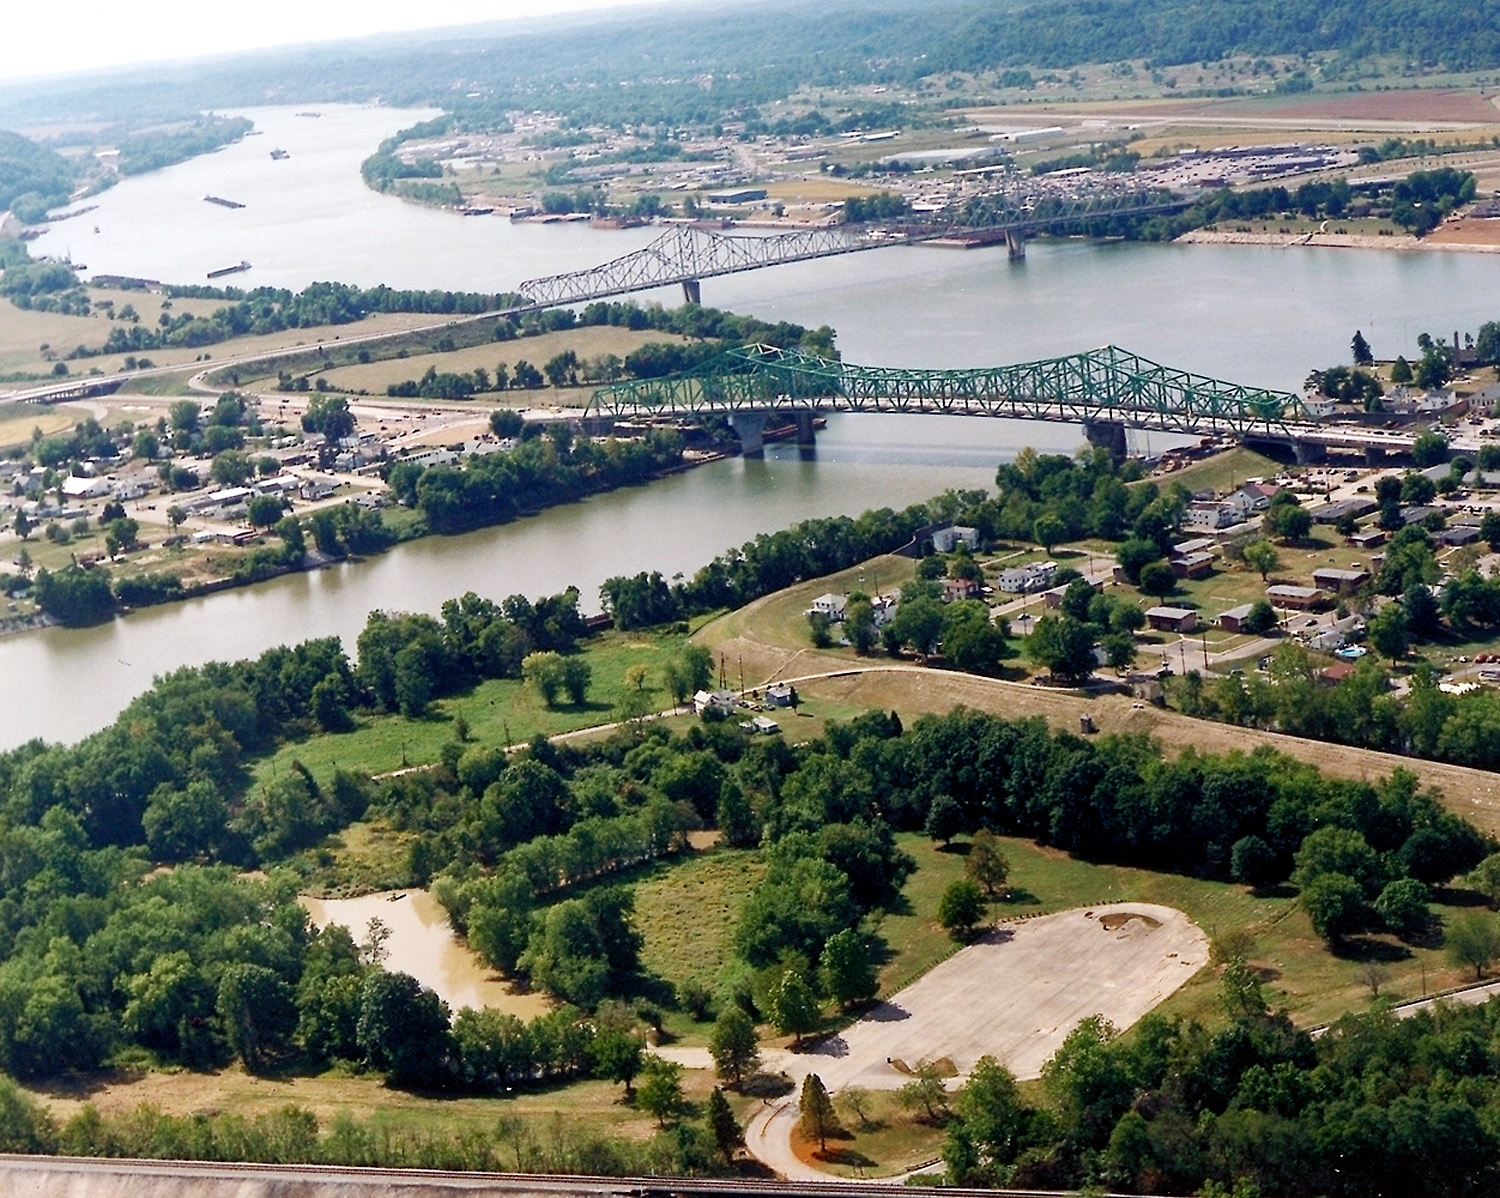 Point Pleasant (foreground) at the confluence of the Kanawha and Ohio Rivers. Gallipolis, Ohio is in the background right.